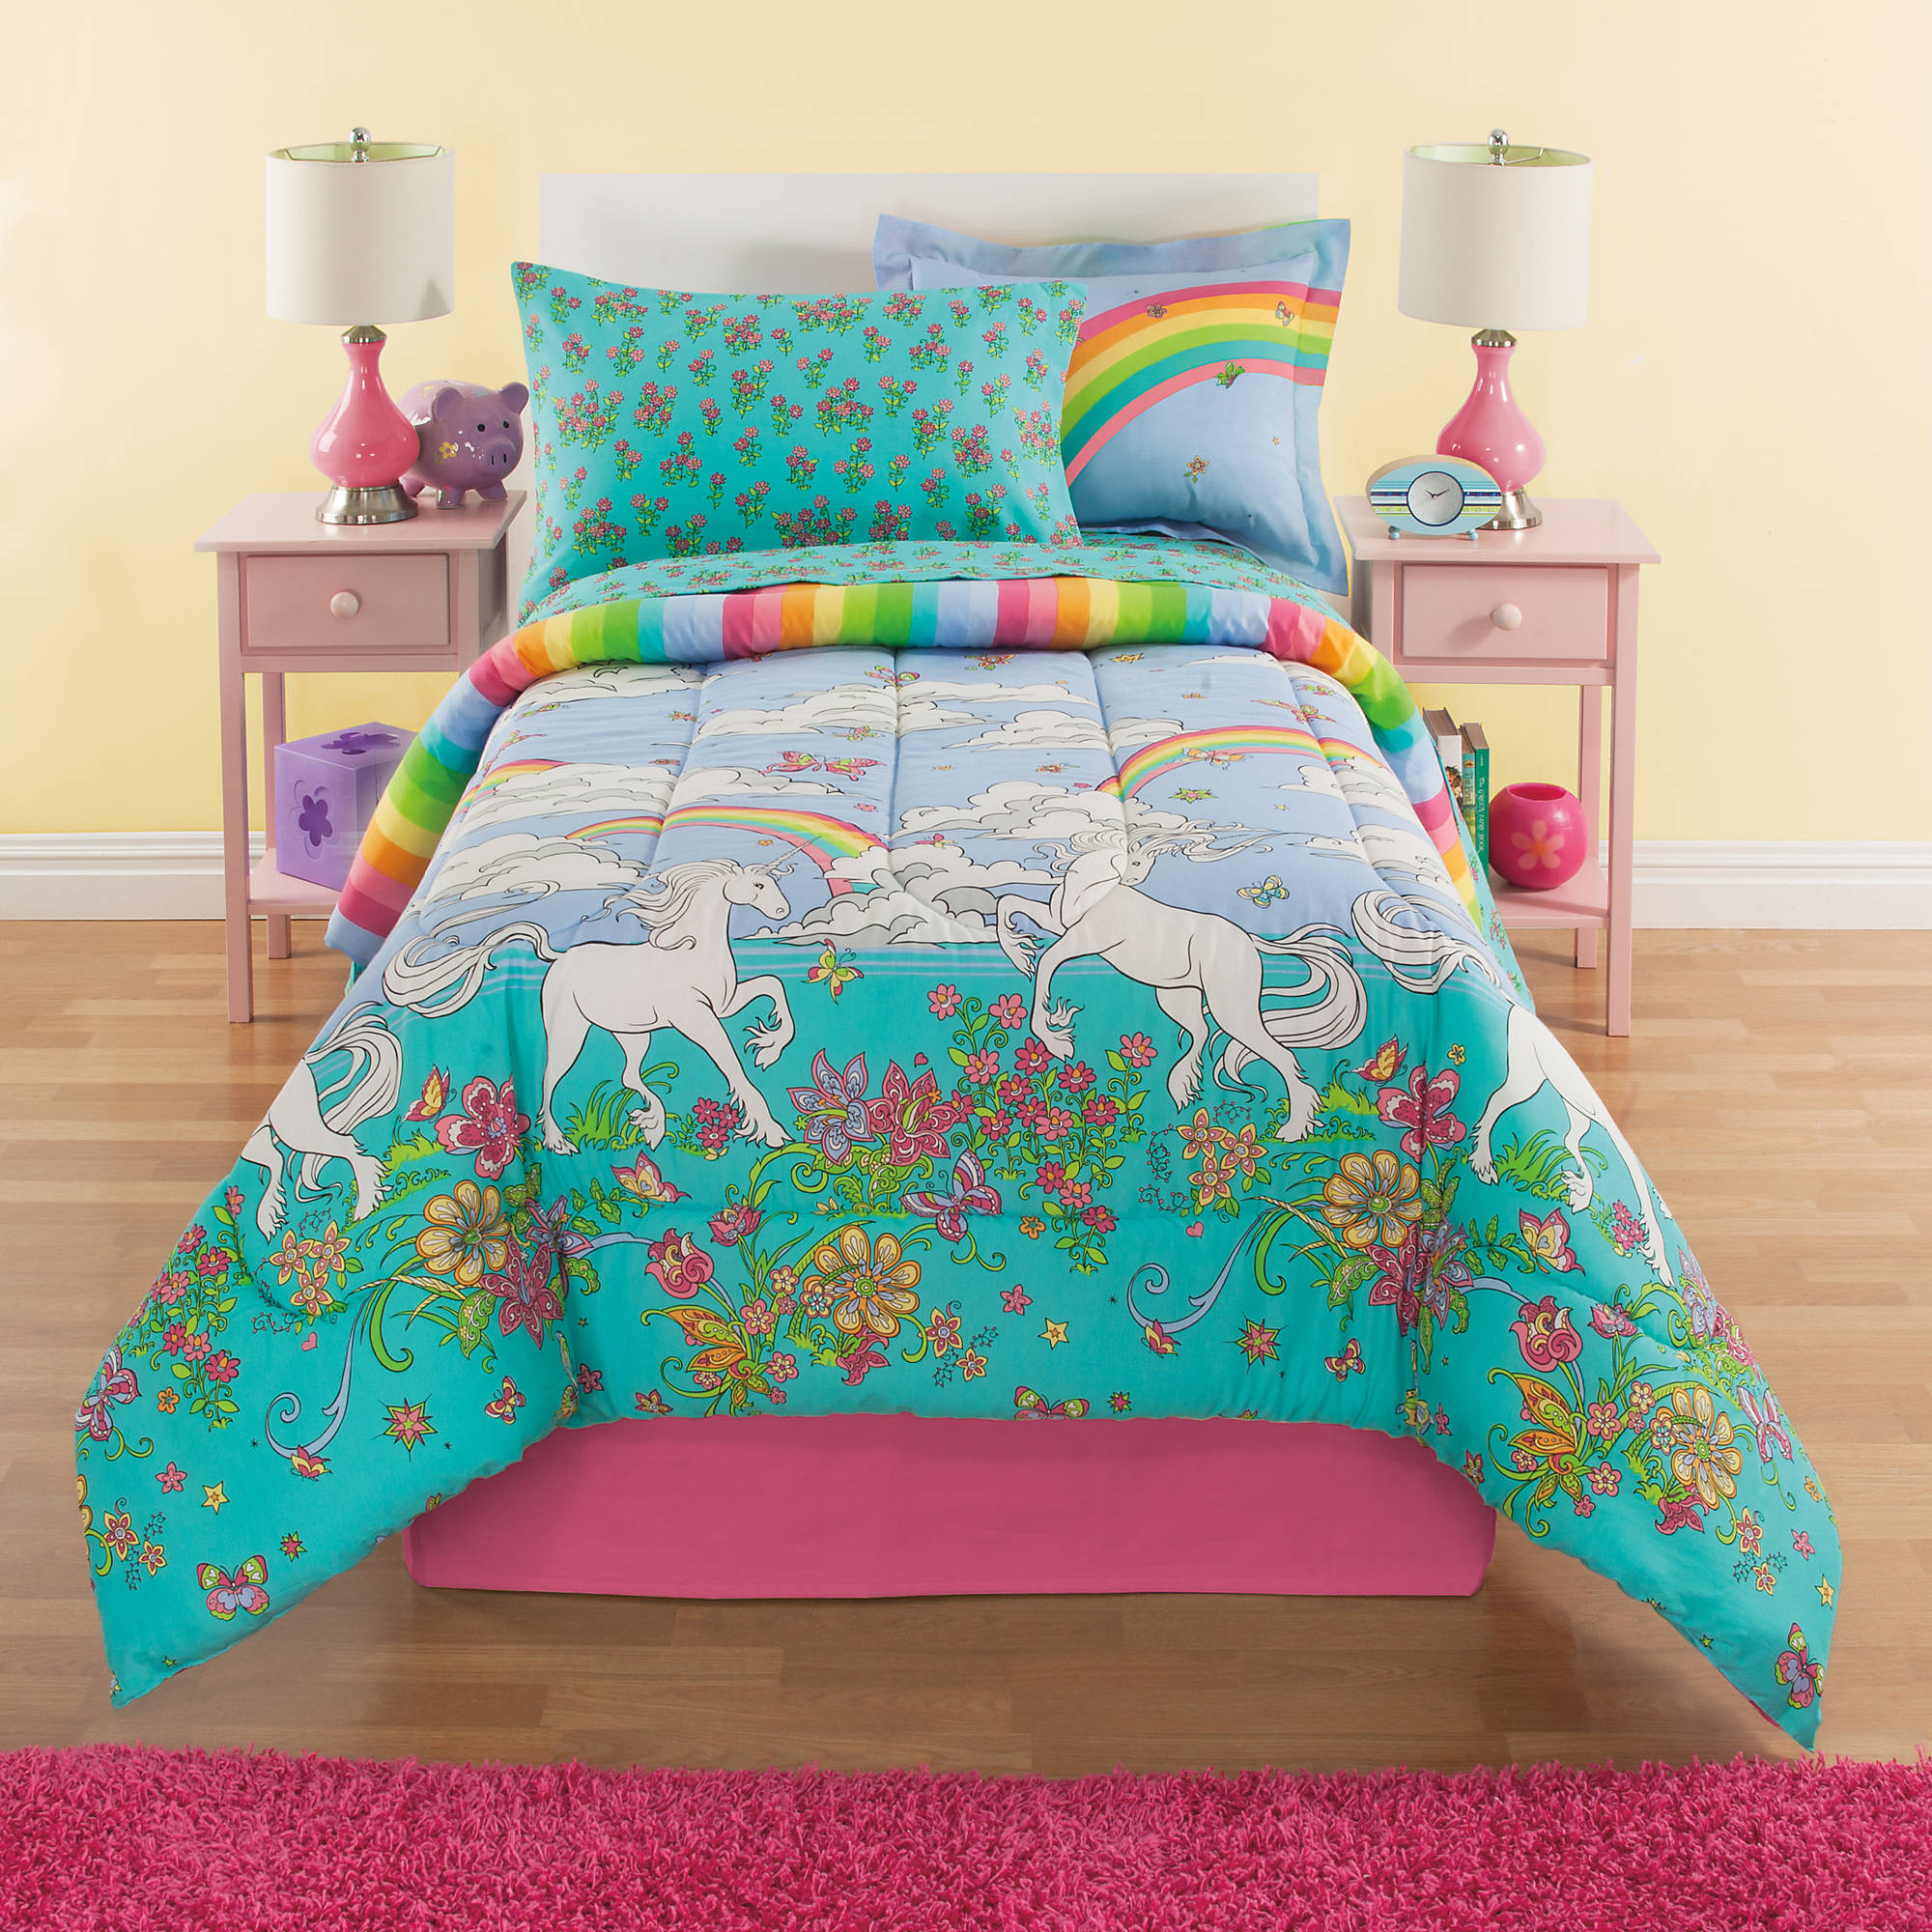 sets bedding a collection coordinated bag mainstays purple kids the in ip butterfly com bed shop walmart